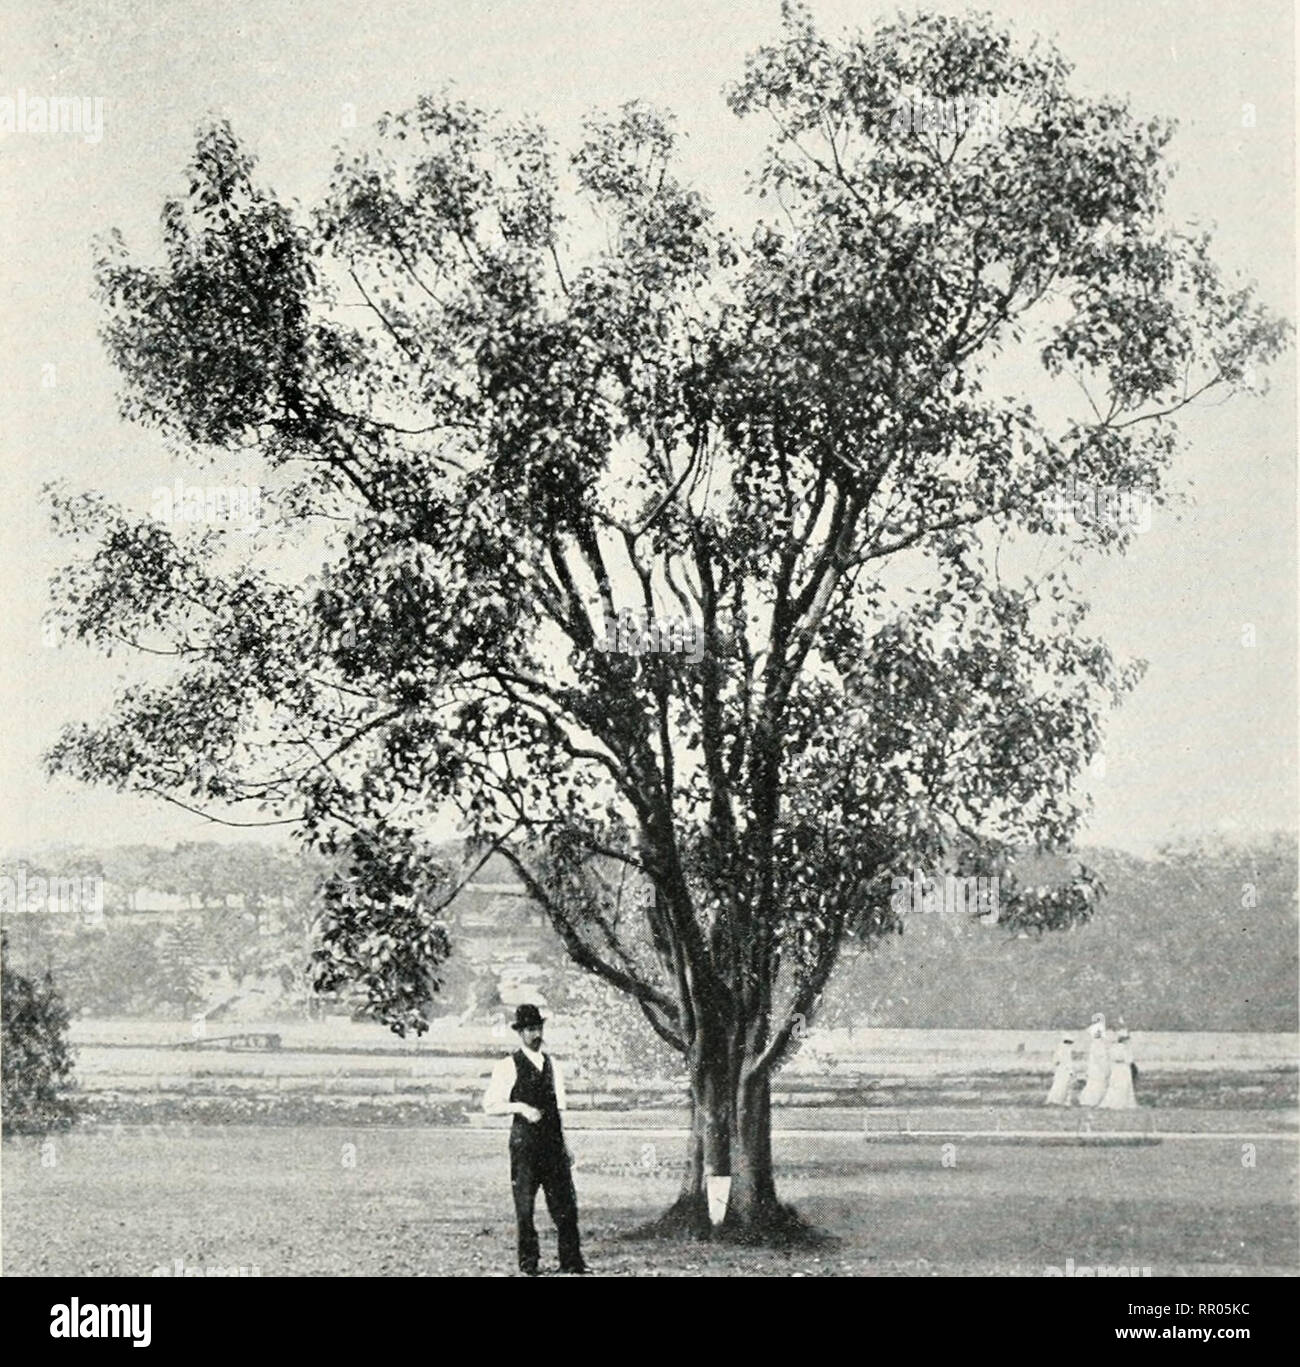 """. The agricultural gazette of New South Wales. Agriculture; Agriculture -- Australia New South Wales. Dec. 2, 1908.] Agricultural Gazette of N.S.W. 973 24. F. religiosn, L. """" Peepul"""" or """"Pipal."""" The """" Sacreci Fig Tree """" of India and Ceylon. See tt. 67^ and 84« of vol. i, Ann. Bof. Gard., Calcutta. The sacred """"Bo"""" tree at Anuradhapura, in Cpylon, which was brought from North India and planted in 288 B.C., is probably the oldest, or nearly the oldest tree in the world, historically known. (Emerson-Tennant, """"Ceylon,"""" ii, 613, quoted by Gamble.) Th - Stock Image"""